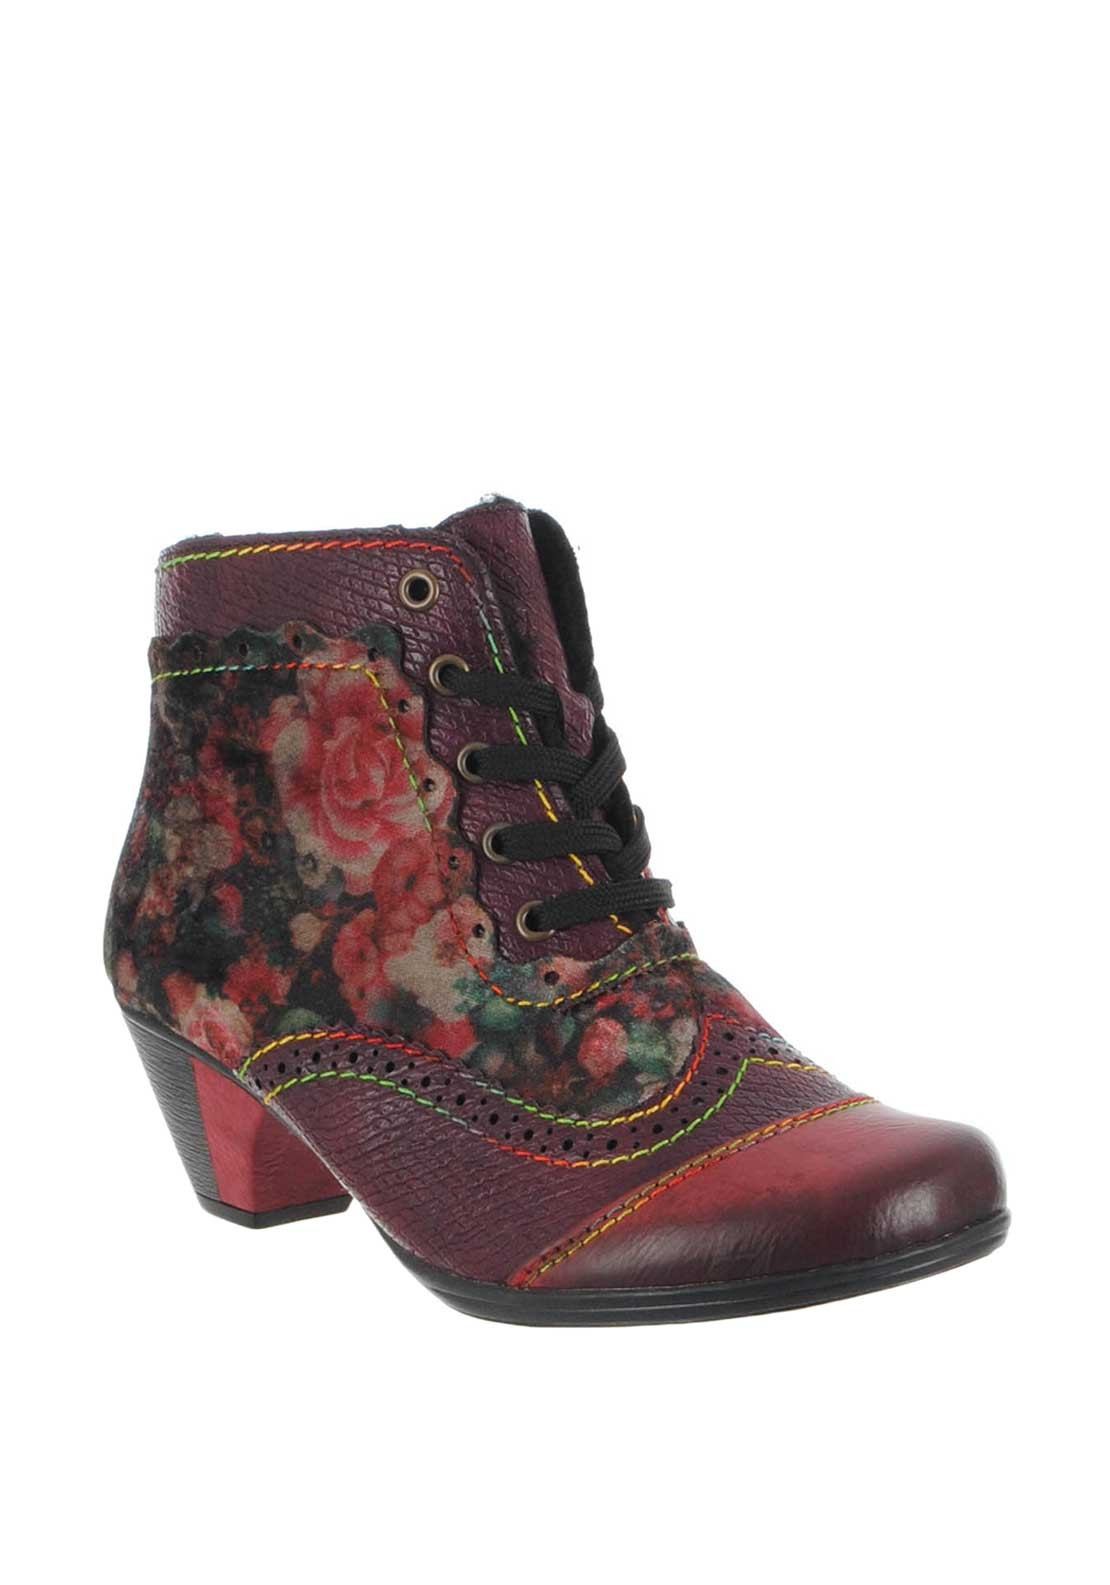 big sale 77396 299a5 Rieker Womens Velvet Floral Boots, Purple